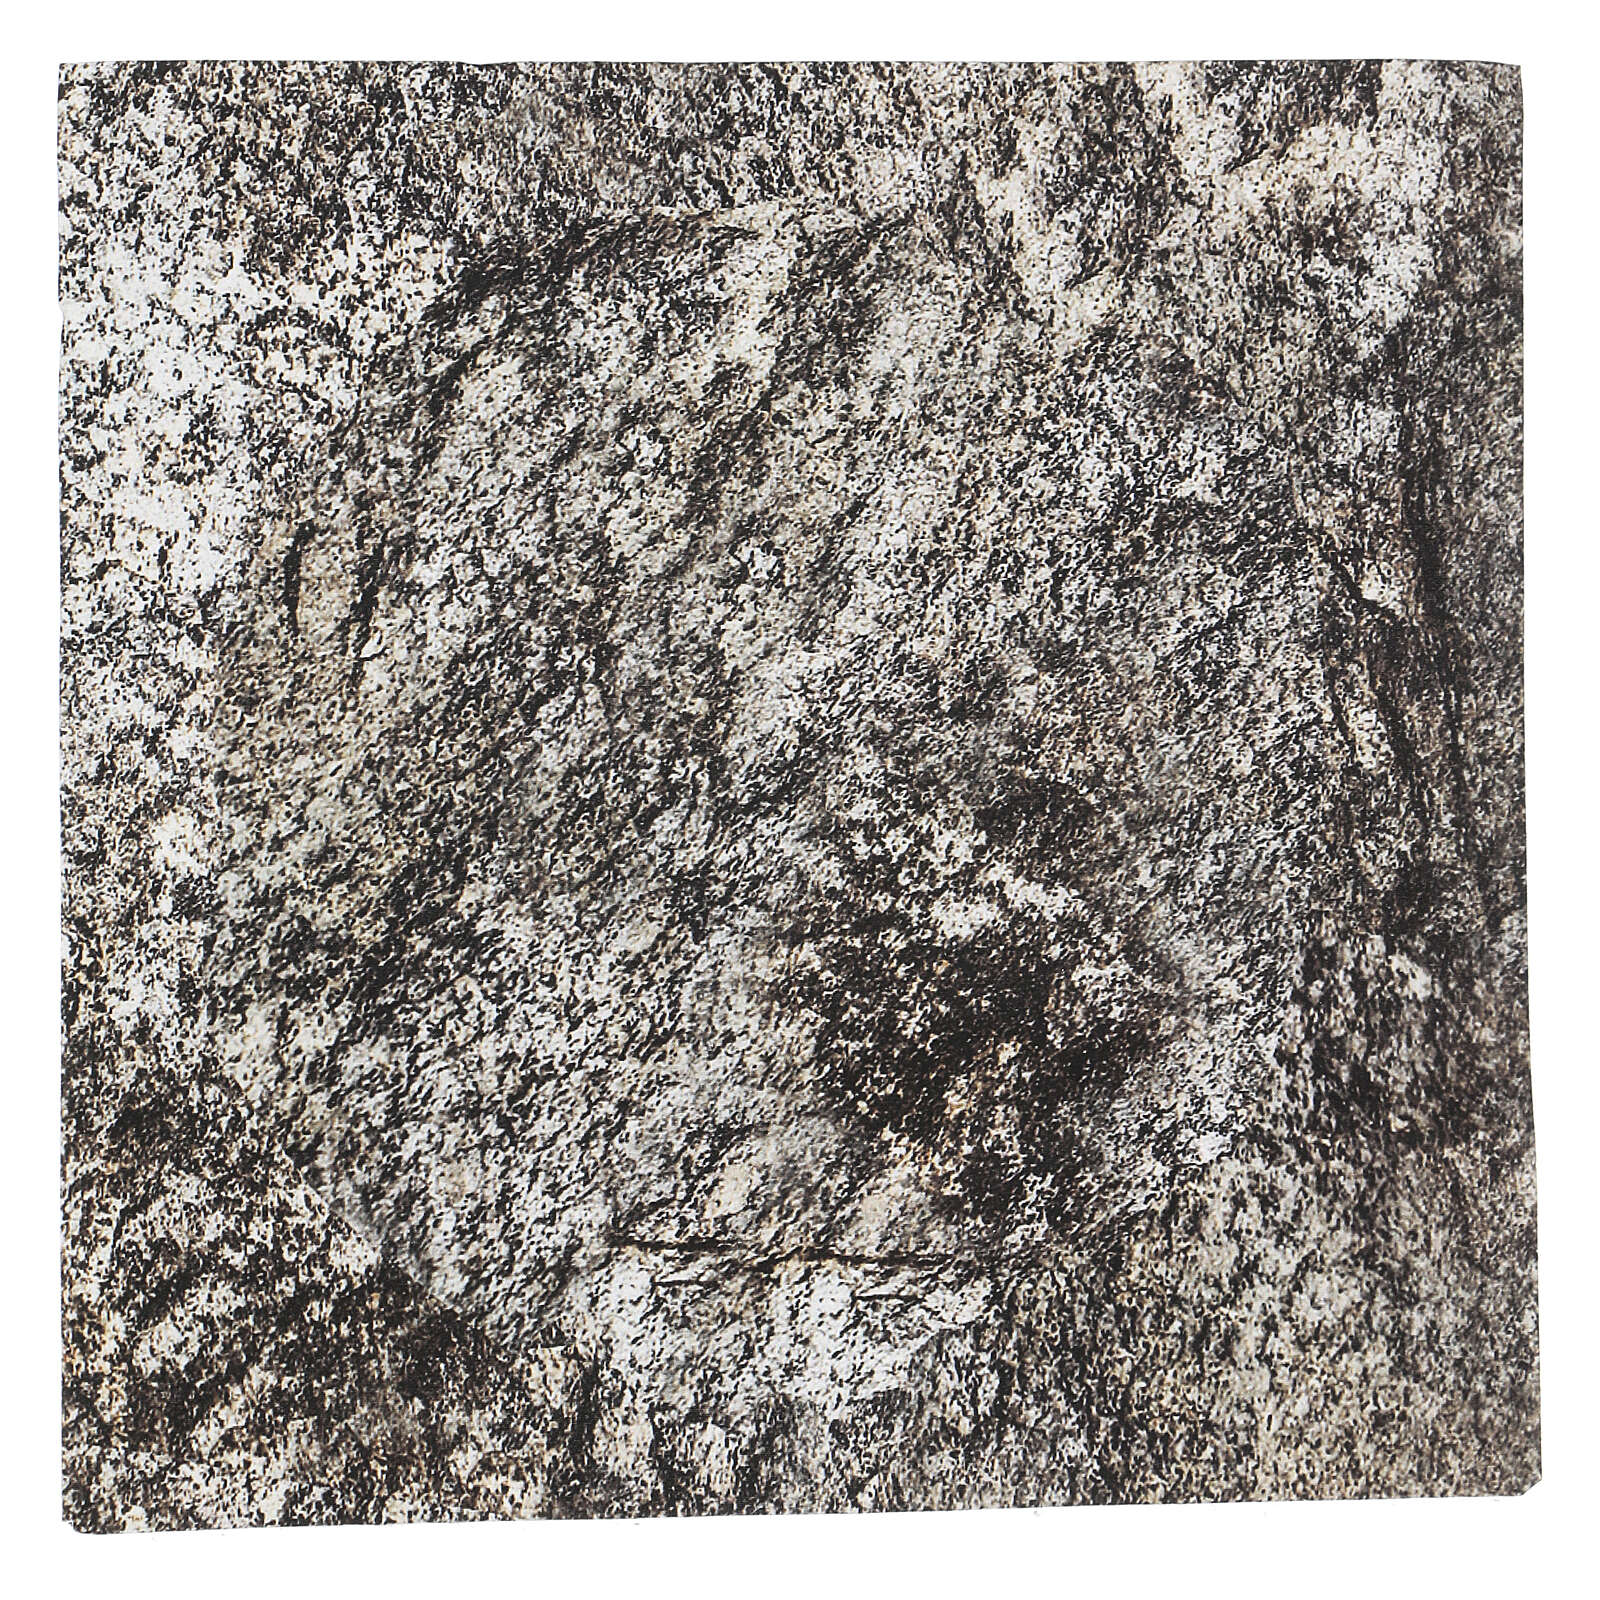 Nativity backdrop, rocky texture paper 30x30 cm 4